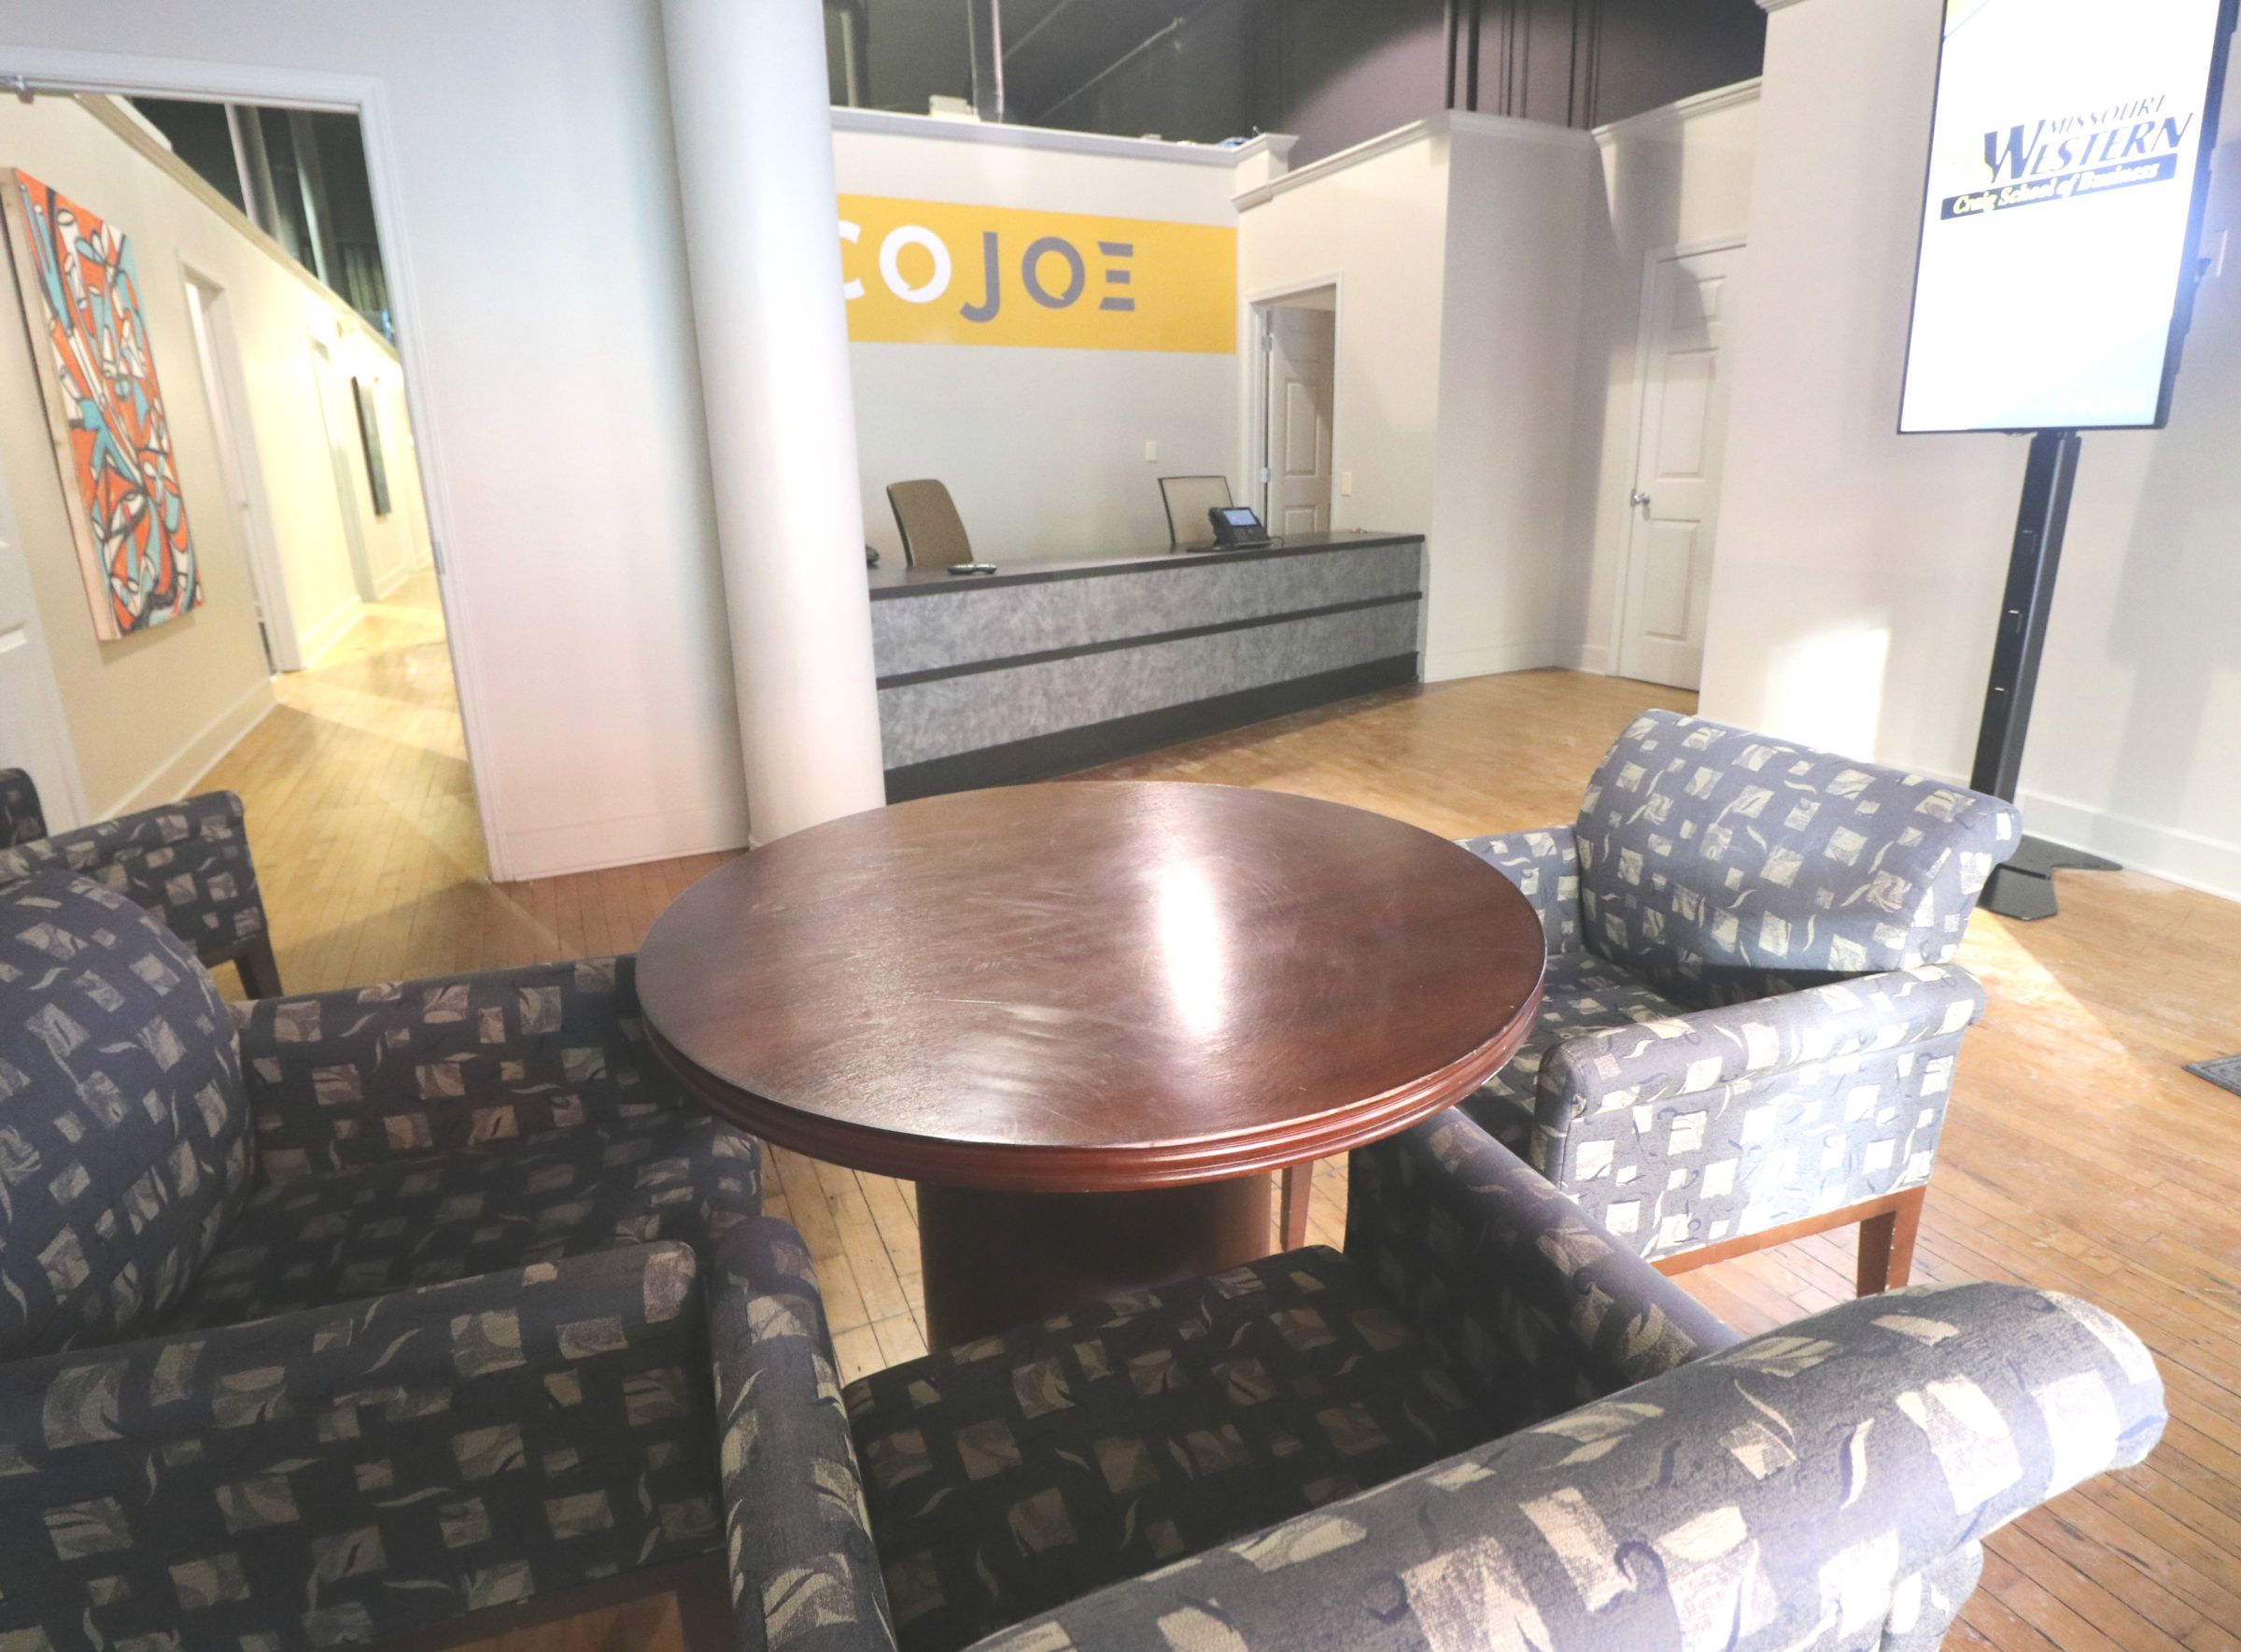 ST. JOSEPH, MO U2013 The Wishes Of Area Entrepreneurs Are Finally Being Granted  With The Planned Opening Of CoJoe, An Innovative Co Working Space Located  In ...